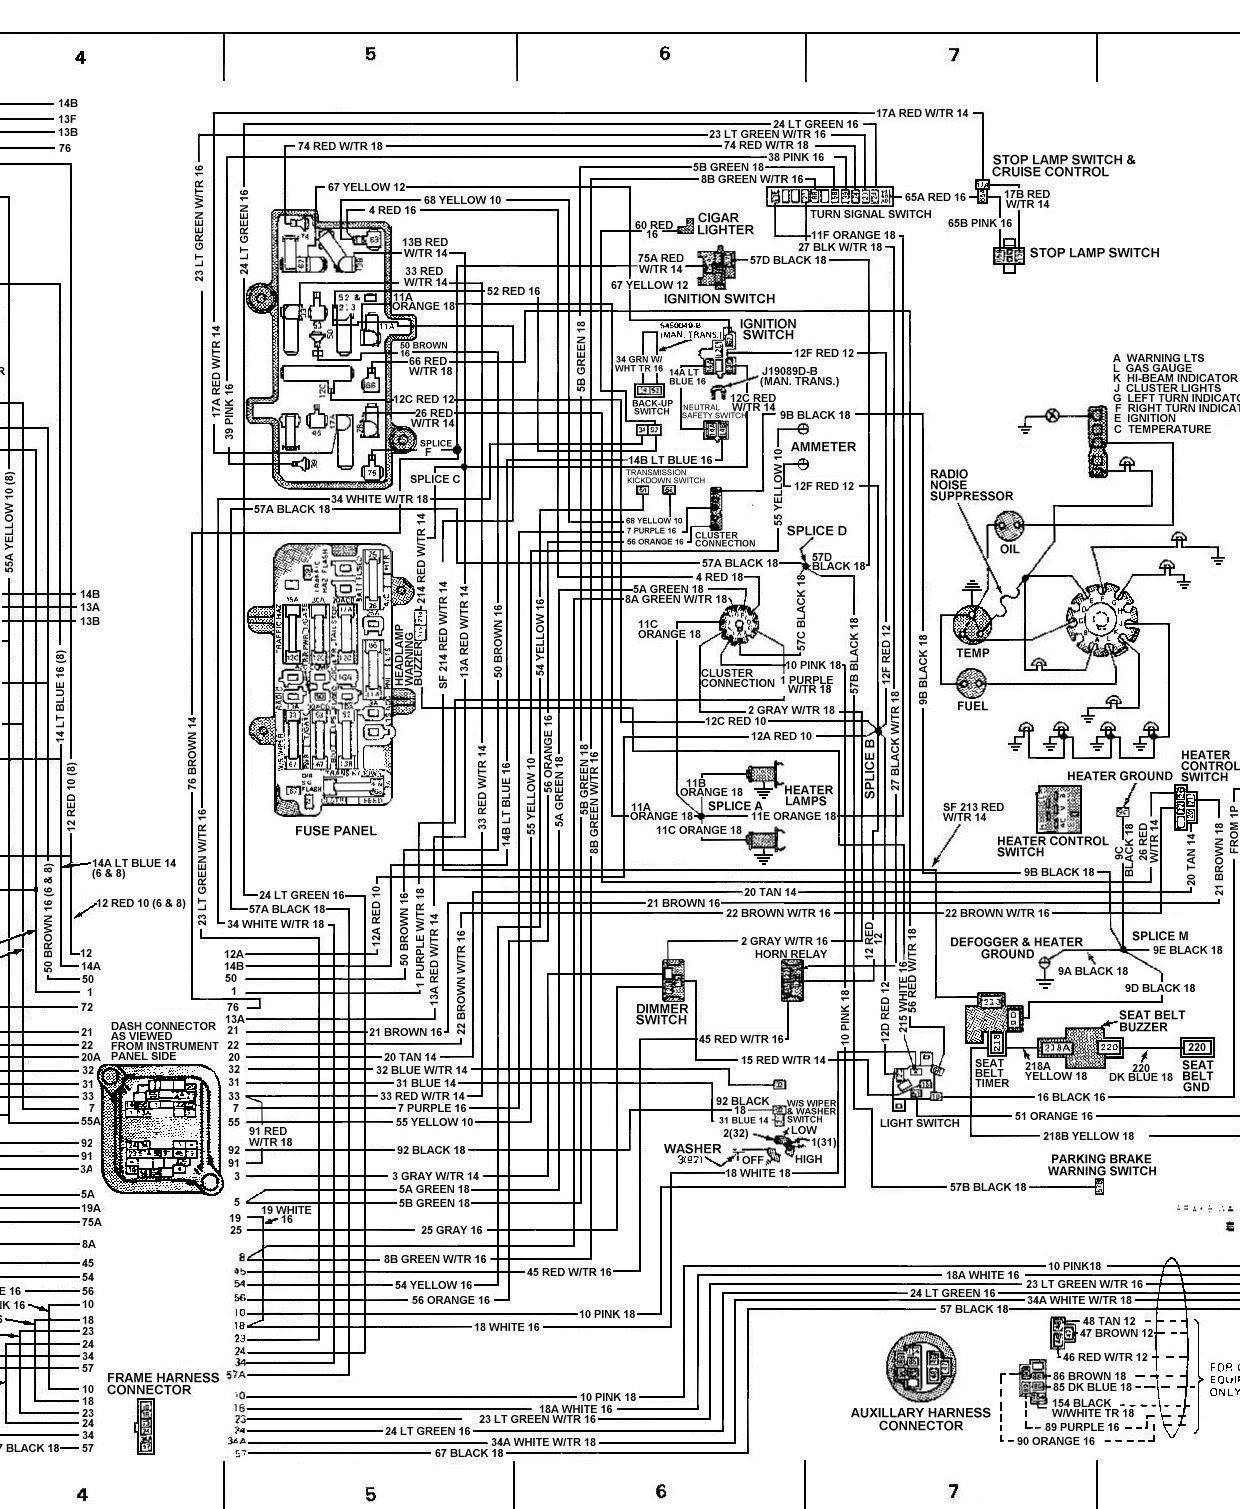 Ns Fan Relay likewise B A A Ac Dbd Ac C Ea C A B as well Maxresdefault also C Aa C moreover Maxresdefault. on 99 buick century wiring diagram